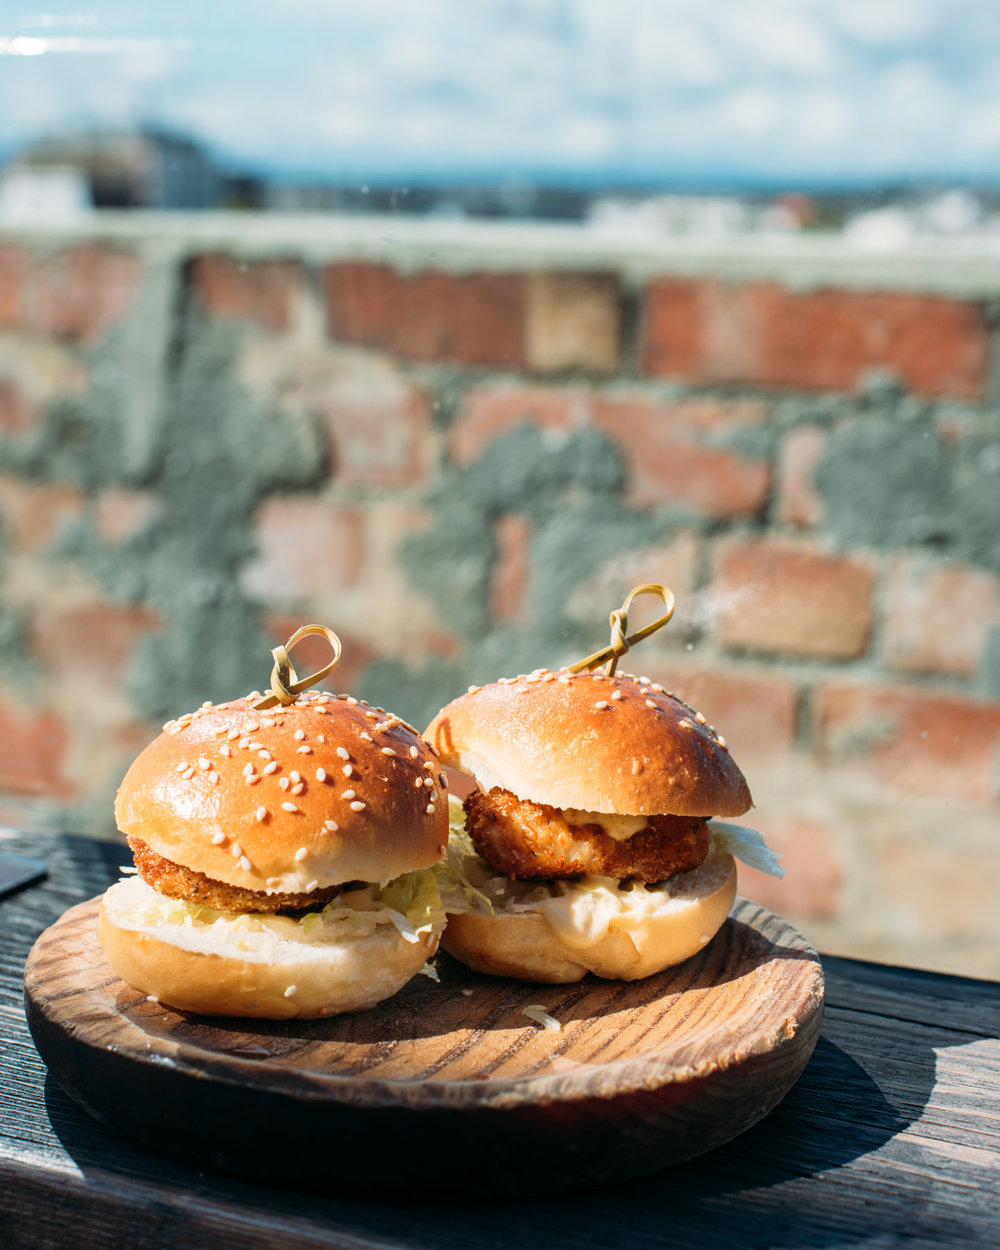 Confit Chicken Wing Sliders, Iceberg Lettuce, Mayo and Tabasco   Naked in the Sky - Melbourne, Australia